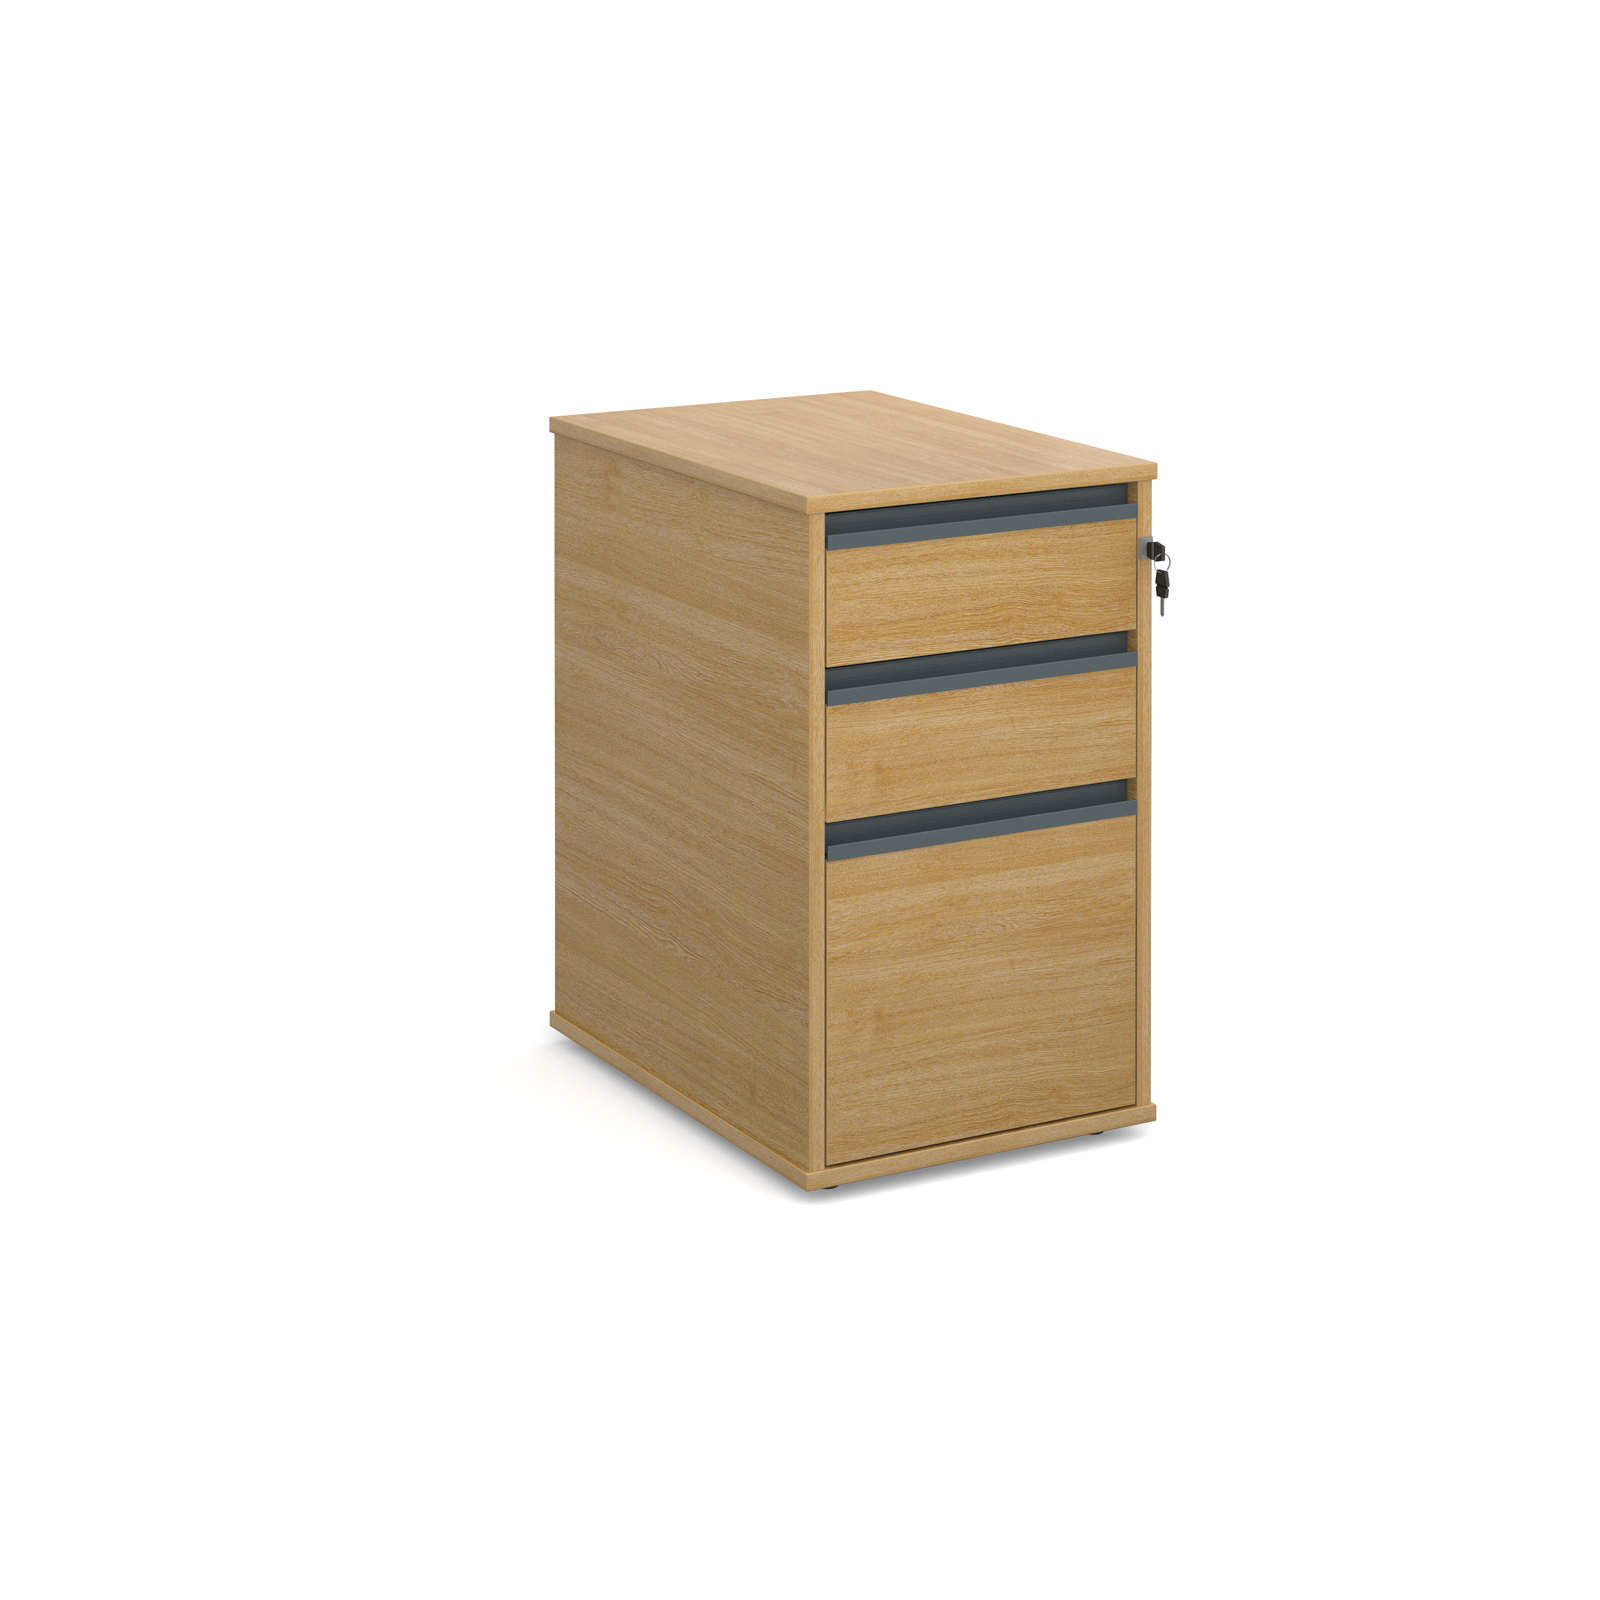 3 Drawer Desk End Ped - Oak